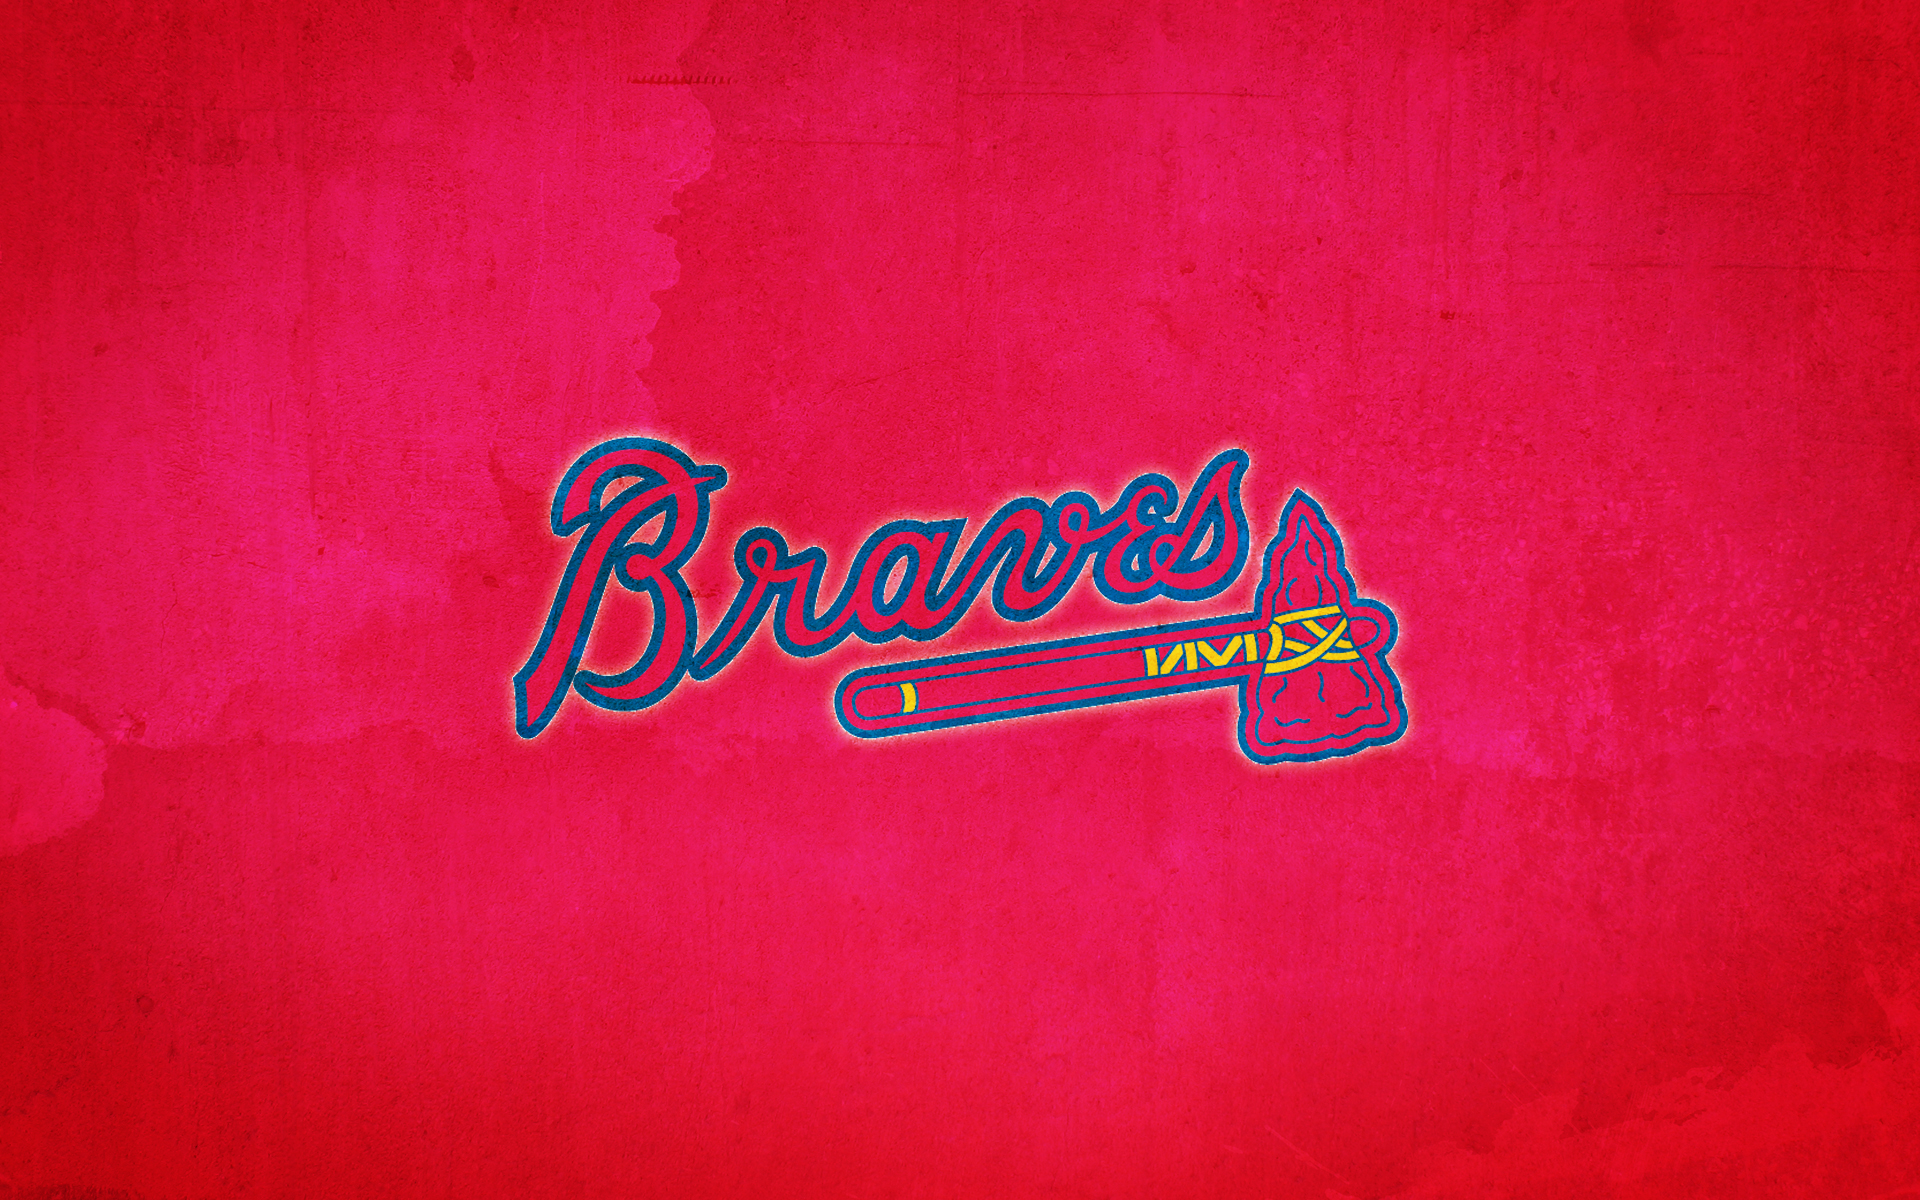 braves wallpaper desktop collection ultimate atlanta 1920x1200 1920x1200